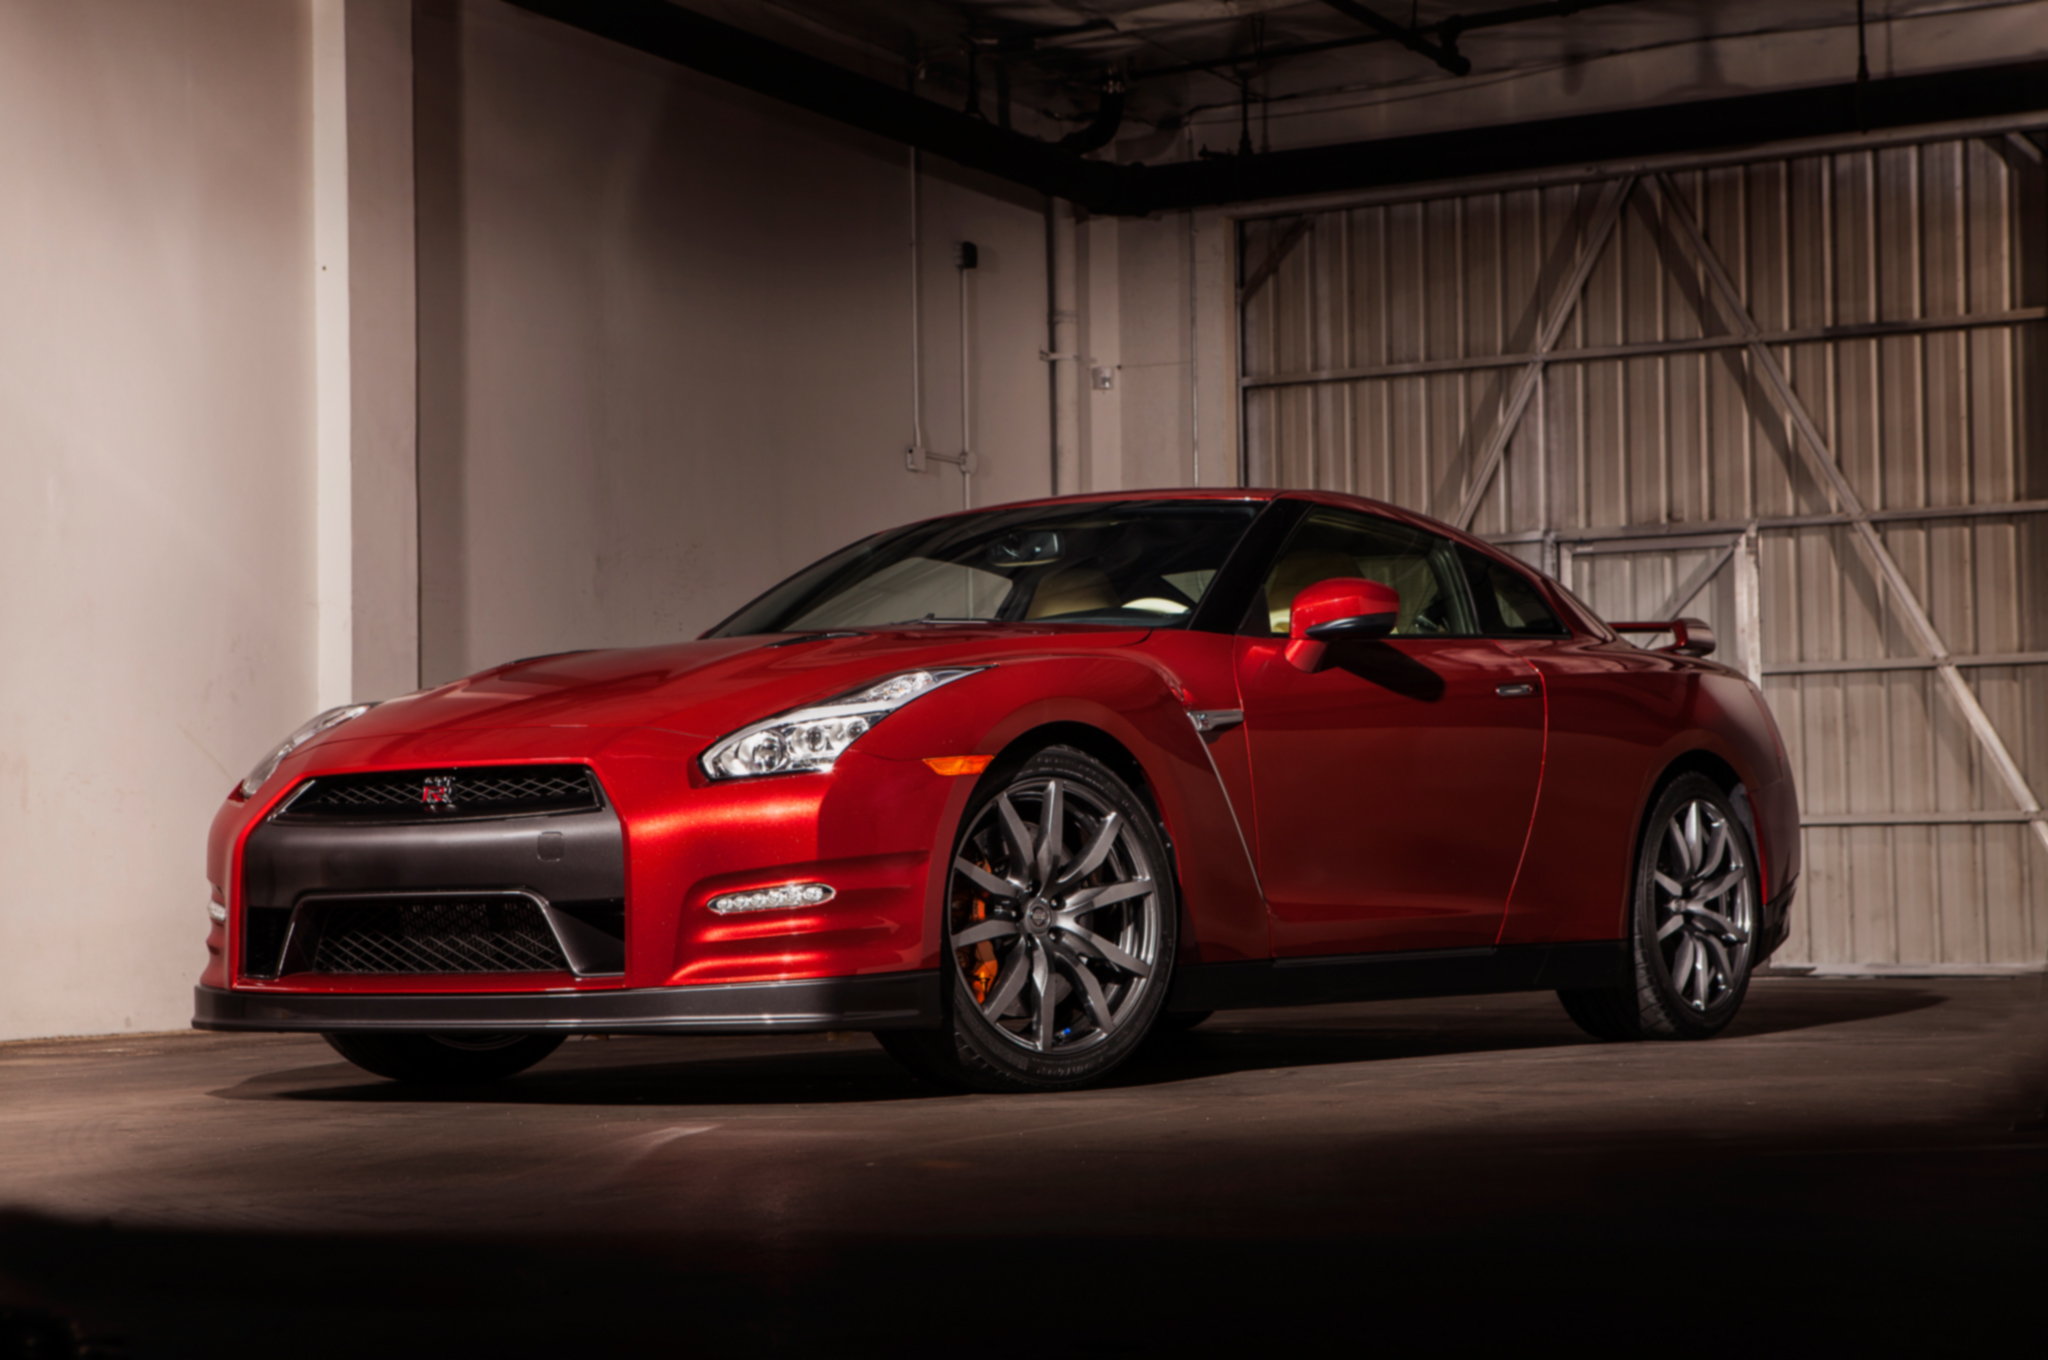 2015 Nissan GT-R Nismo Starts at $151,585, On Sale in July